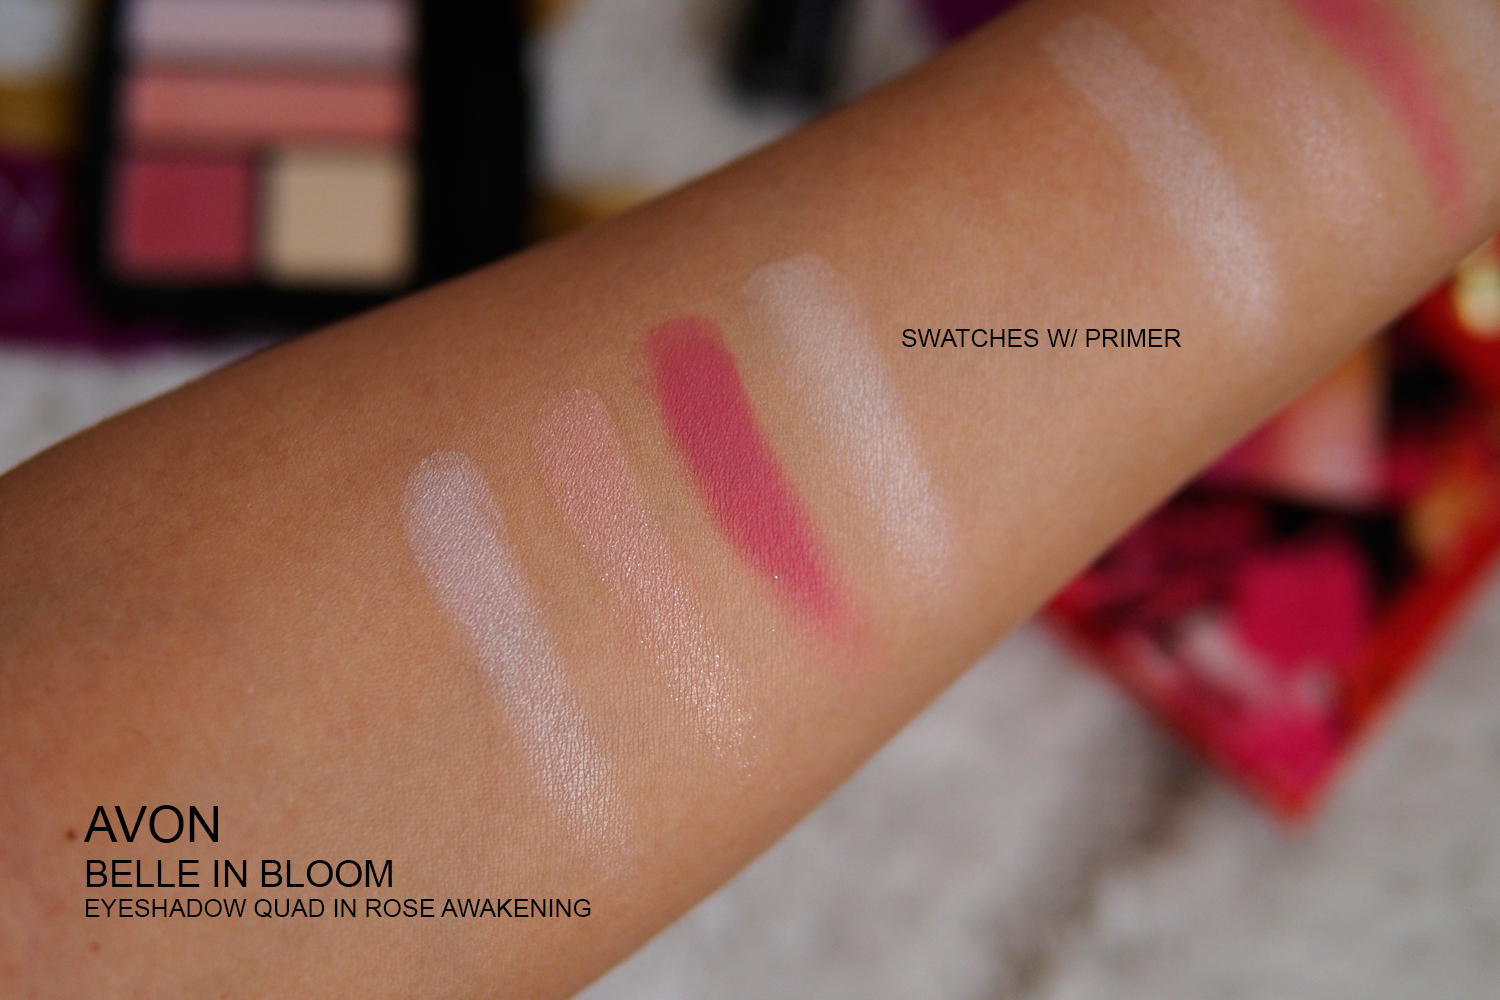 AVON BELLE IN BLOOM COLLECTION SWATCHES